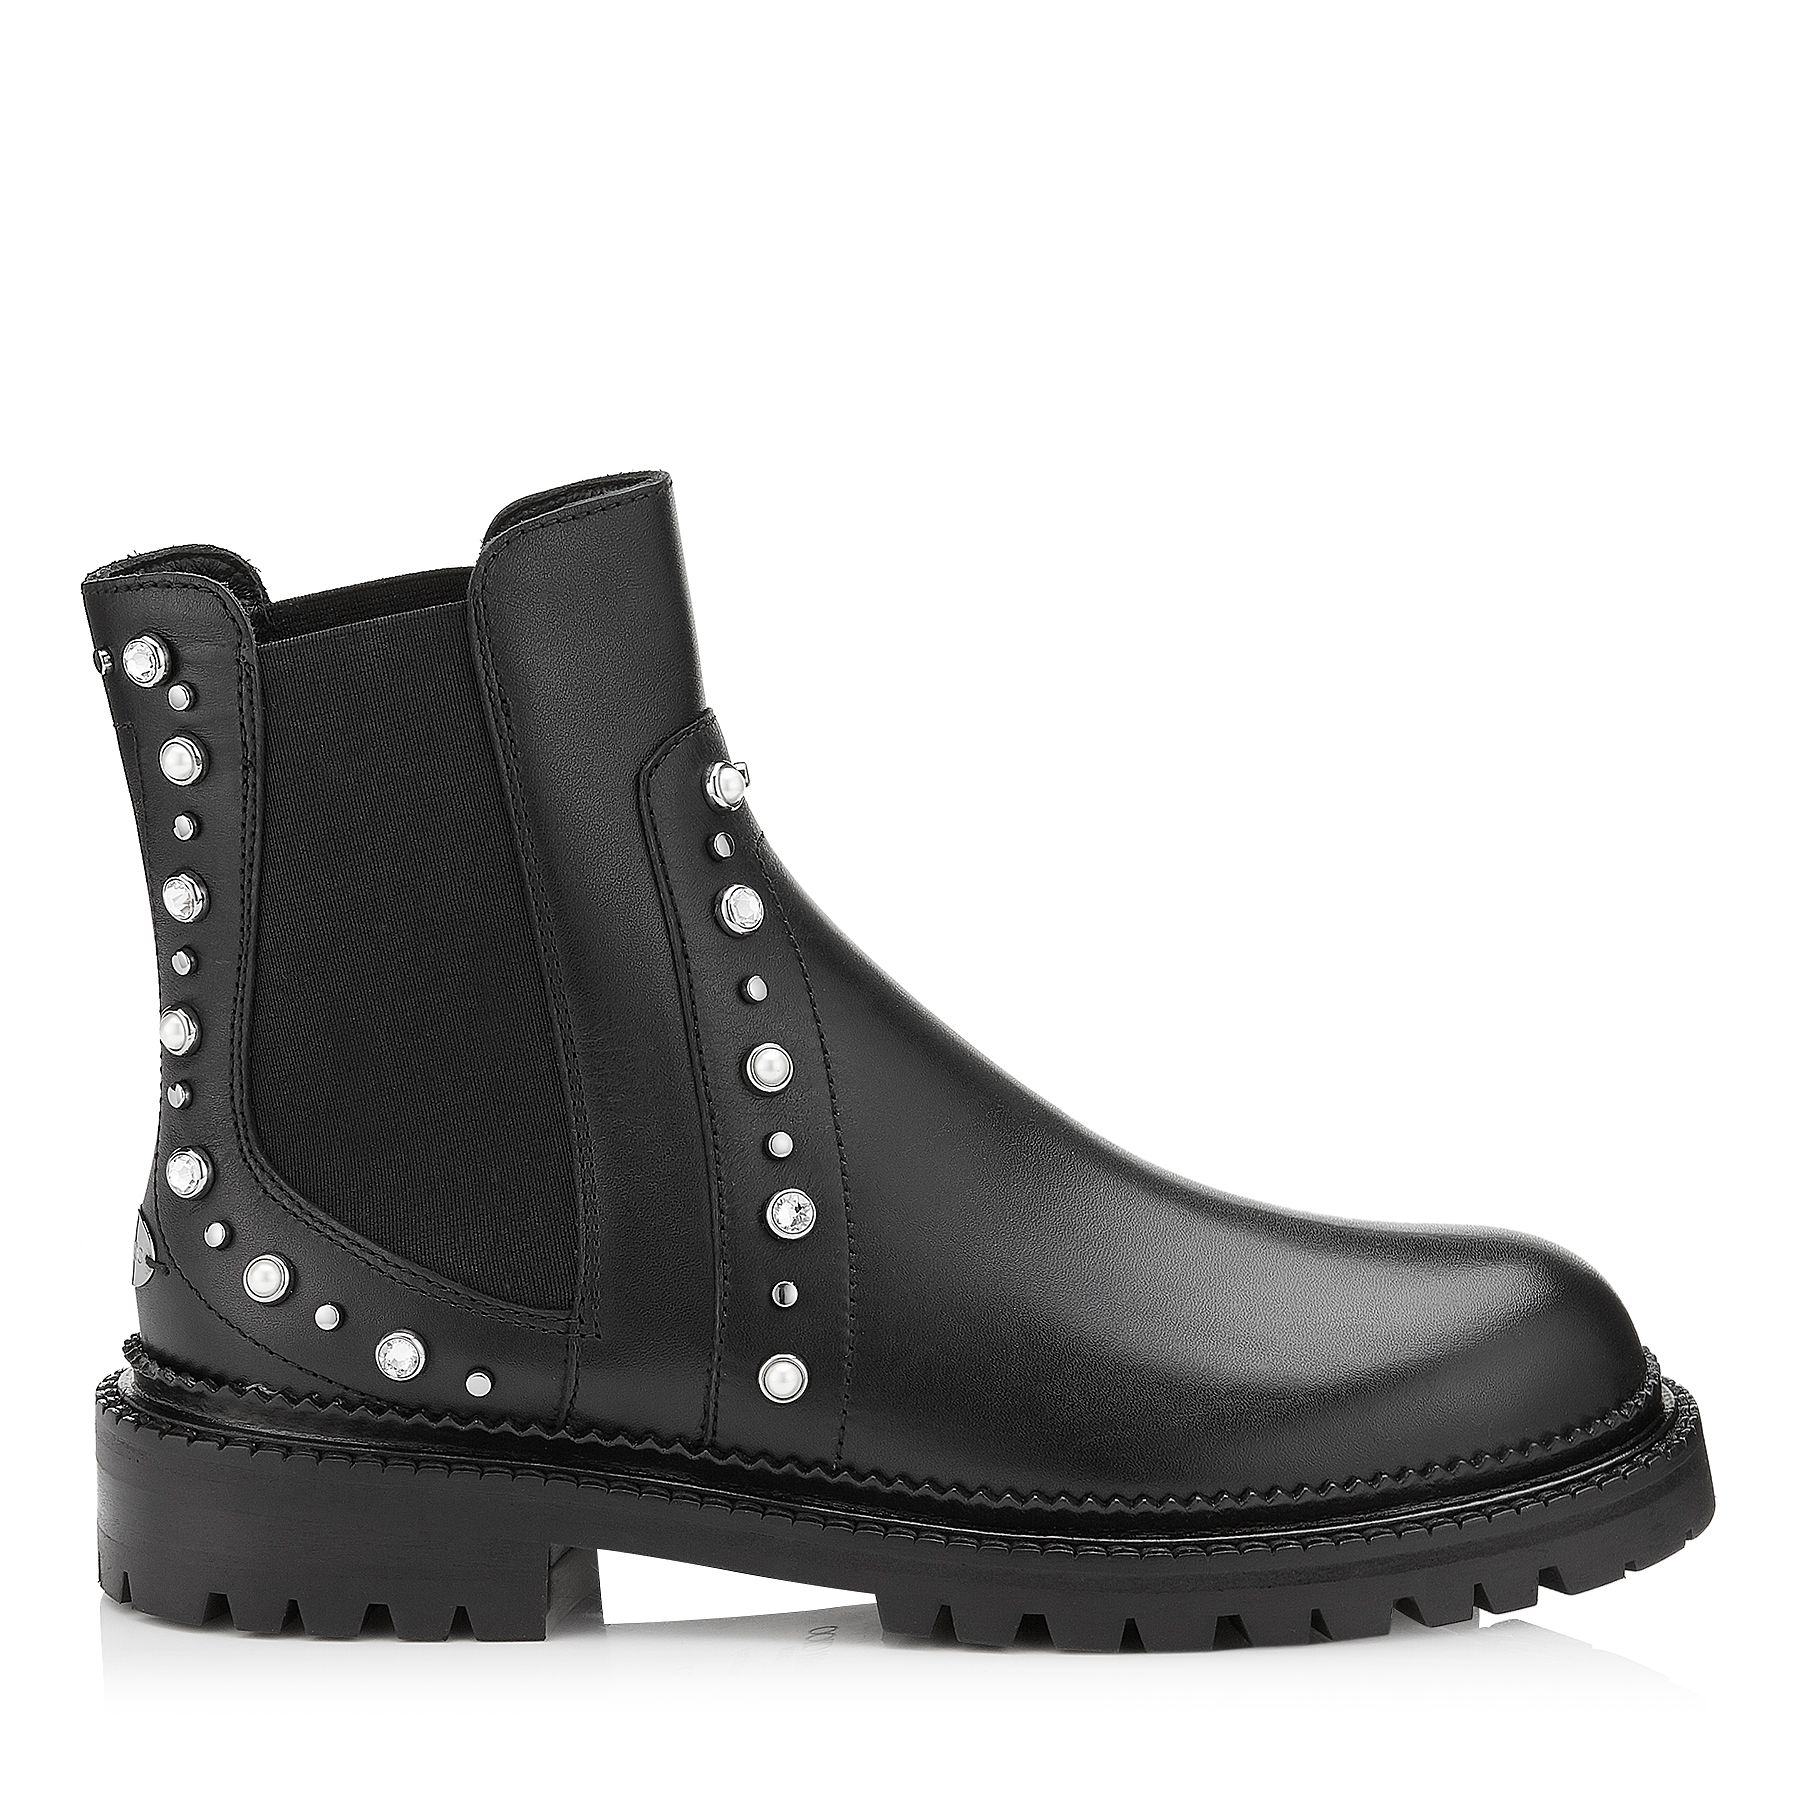 BURROW FLAT Black Leather Biker Boots with Beads and Crystals by Jimmy Choo